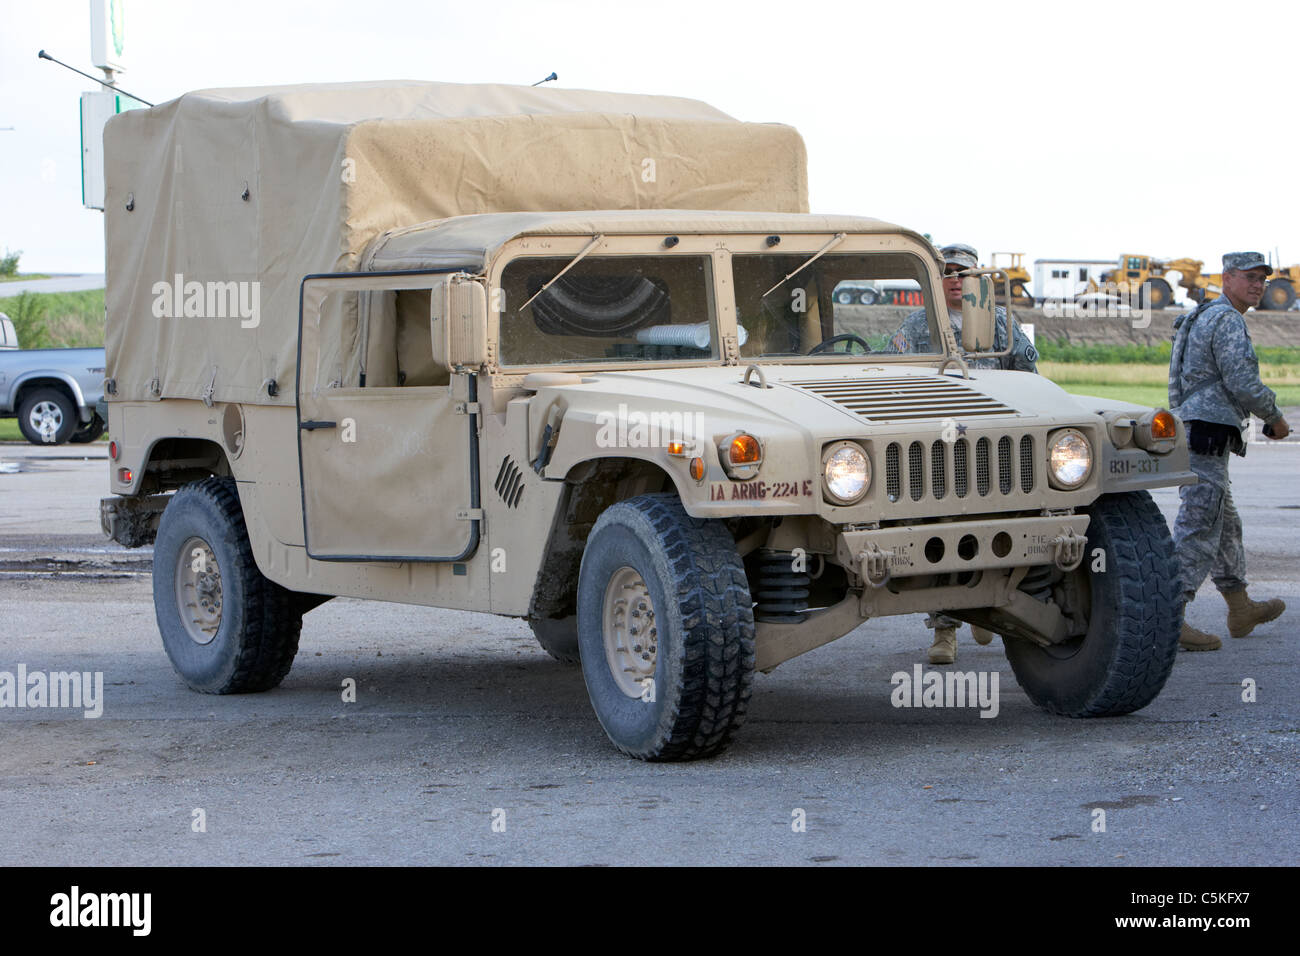 Iowa army national guard humvee and soldiers united states military in front of levees at the missouri river - Stock Image